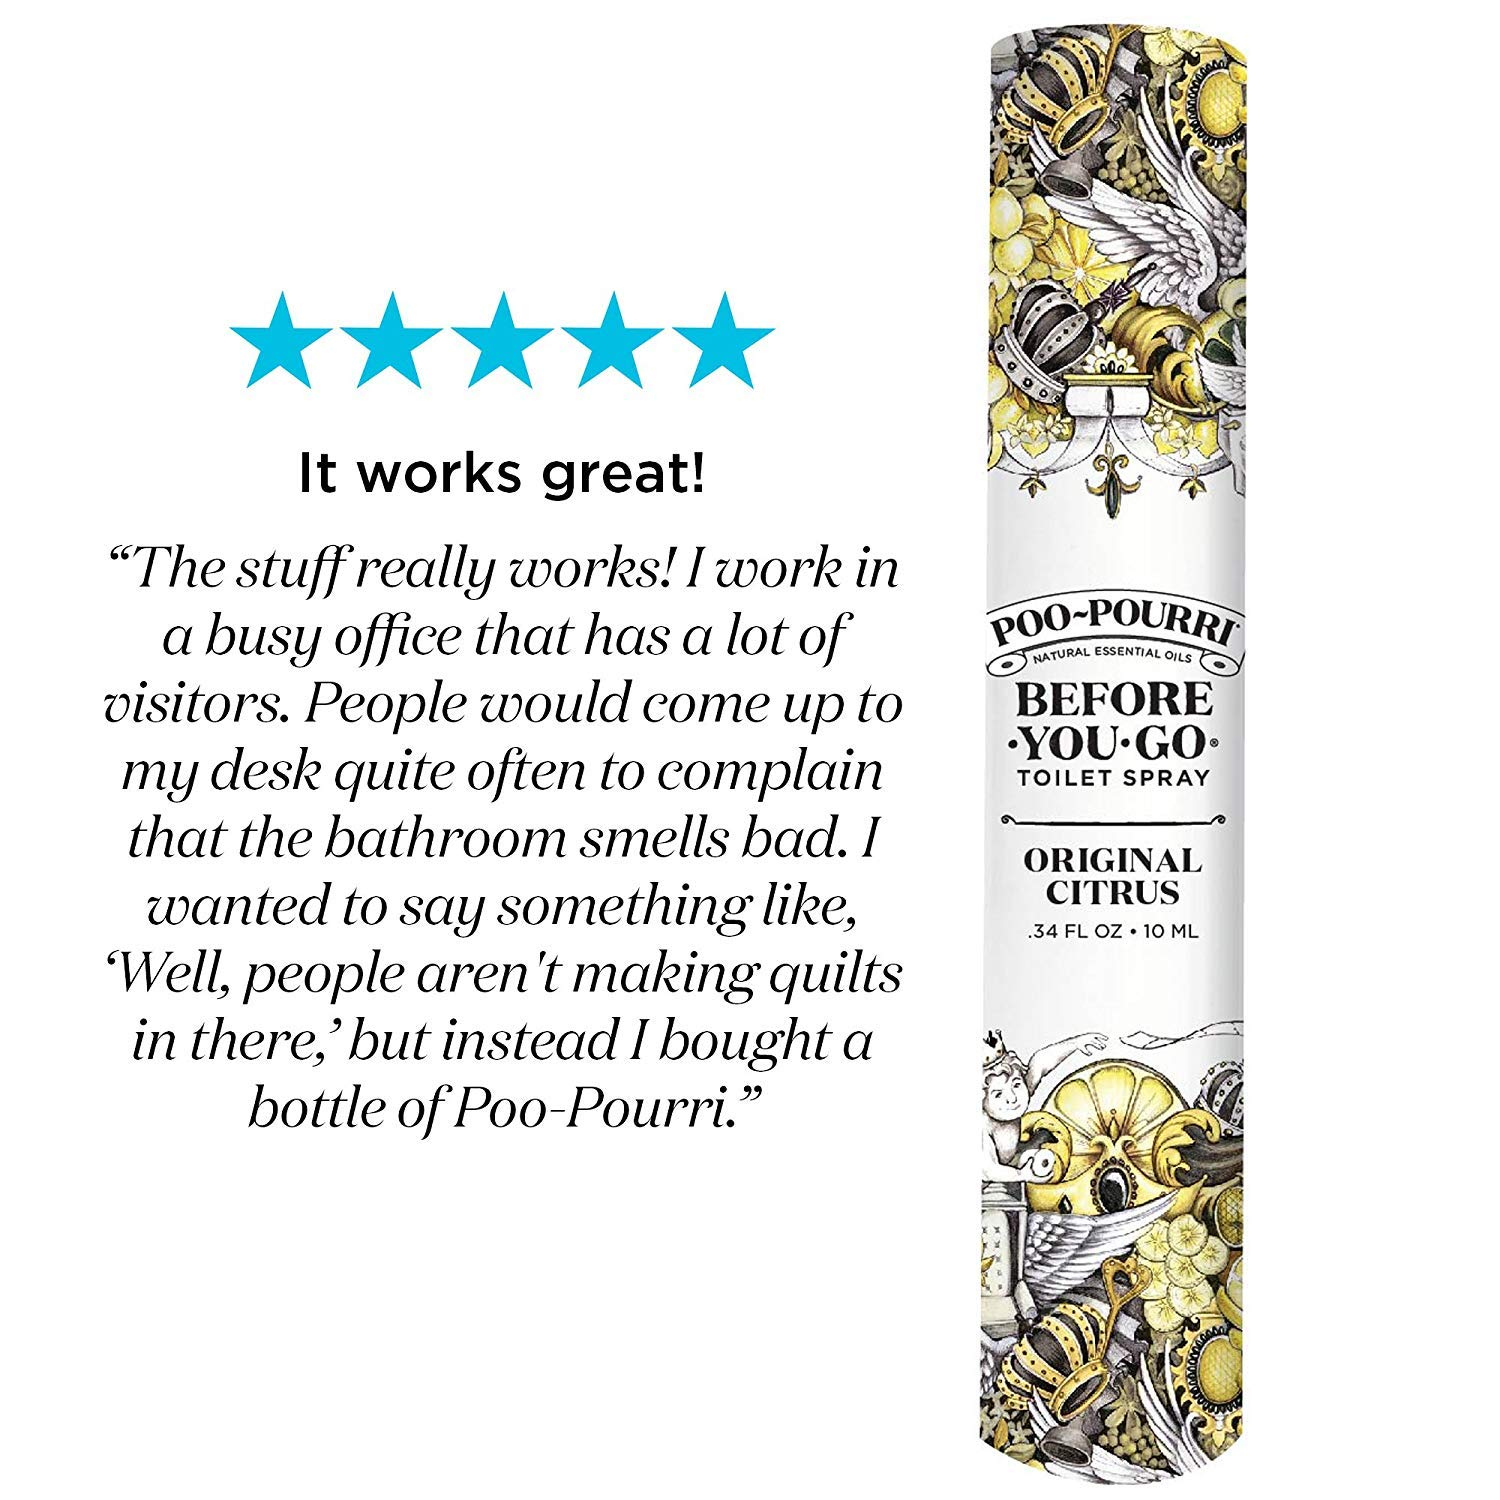 Poo-Pourri Travel Size 10mL - (2) Original Scent, (2) Lavender Vanilla Scent and Tropical Hibiscus 1.4 Ounce Bottle with Bottle Tag Included by Poo-Pourri (Image #4)